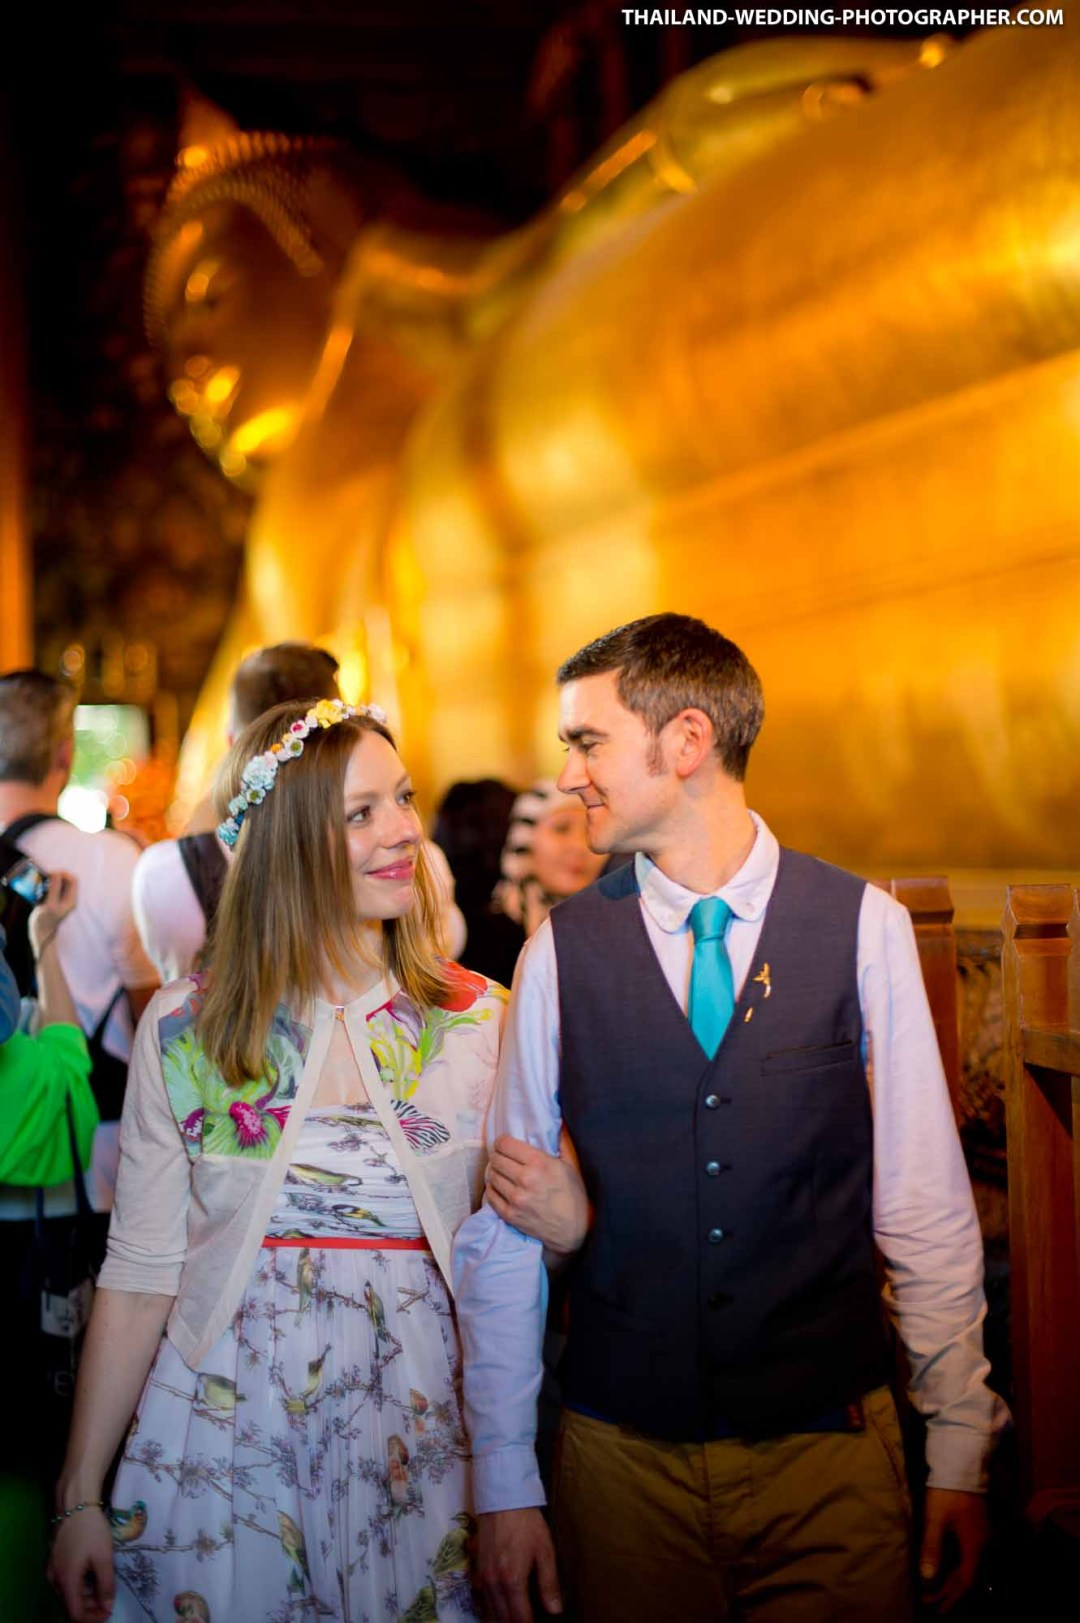 Wat Pho Bangkok Thailand Wedding Photography